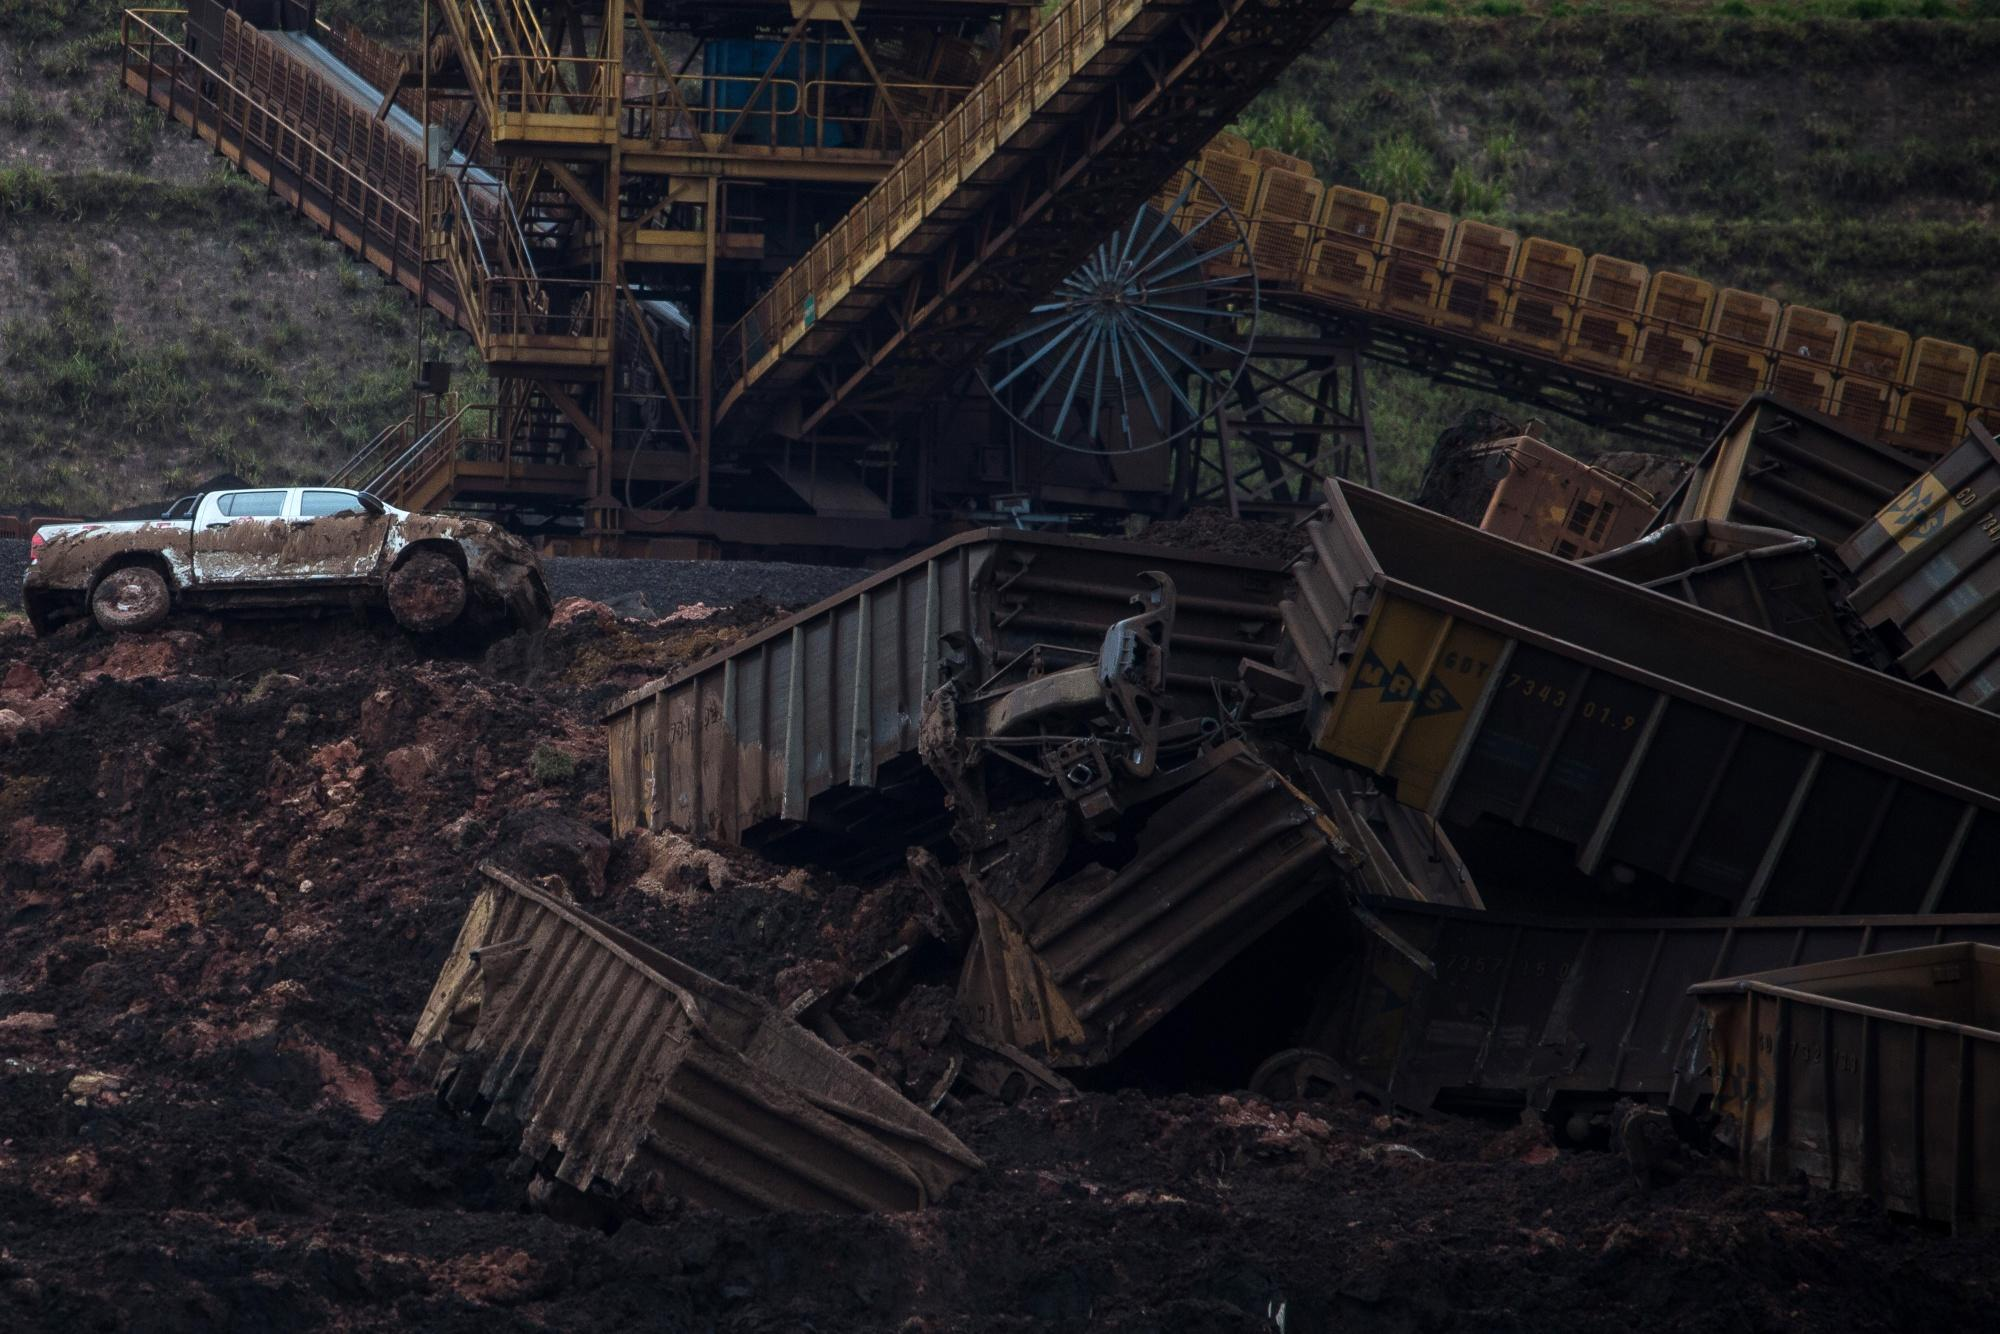 Vale's Management Team Is on Thin Ice After Deadly Dam Break